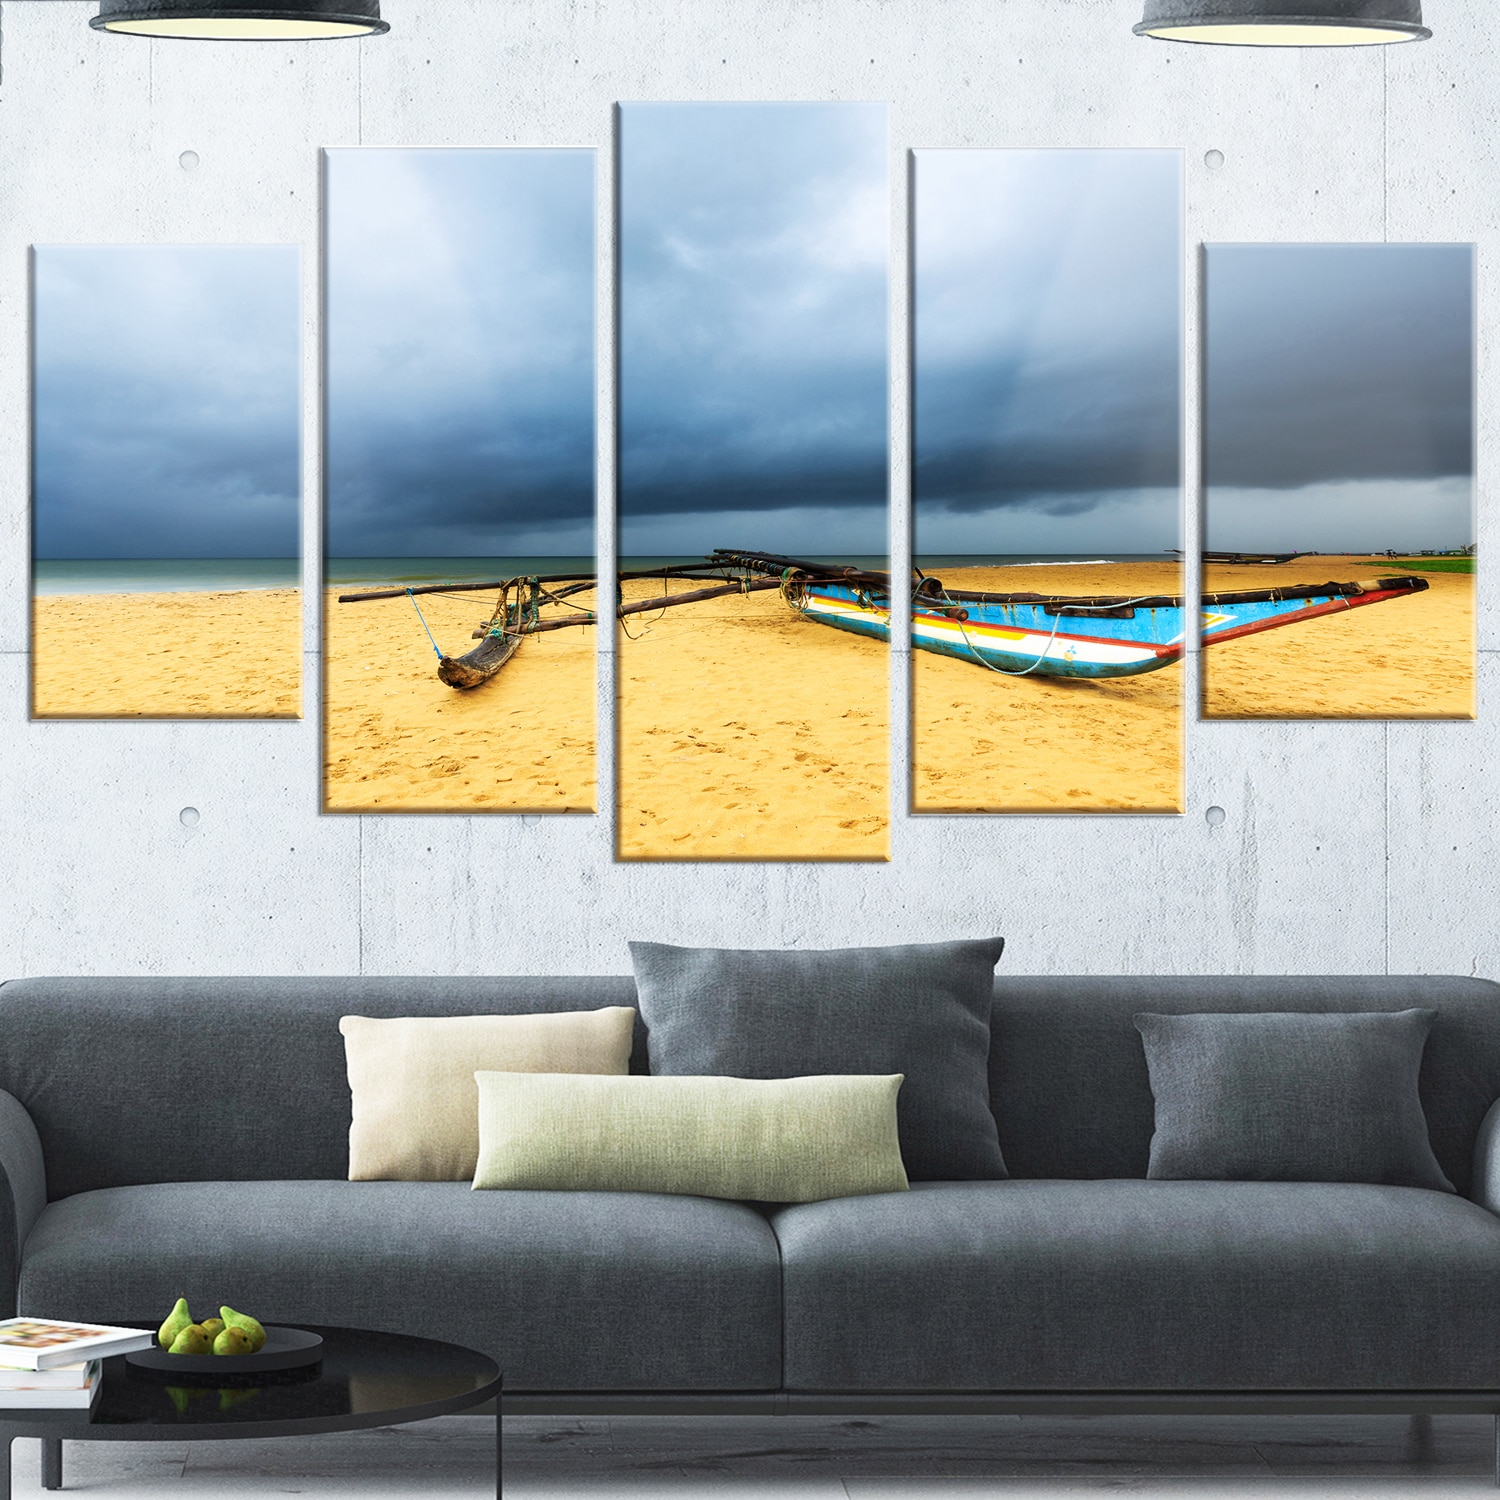 Amazing Large Beach Wall Art Gallery - The Wall Art Decorations ...